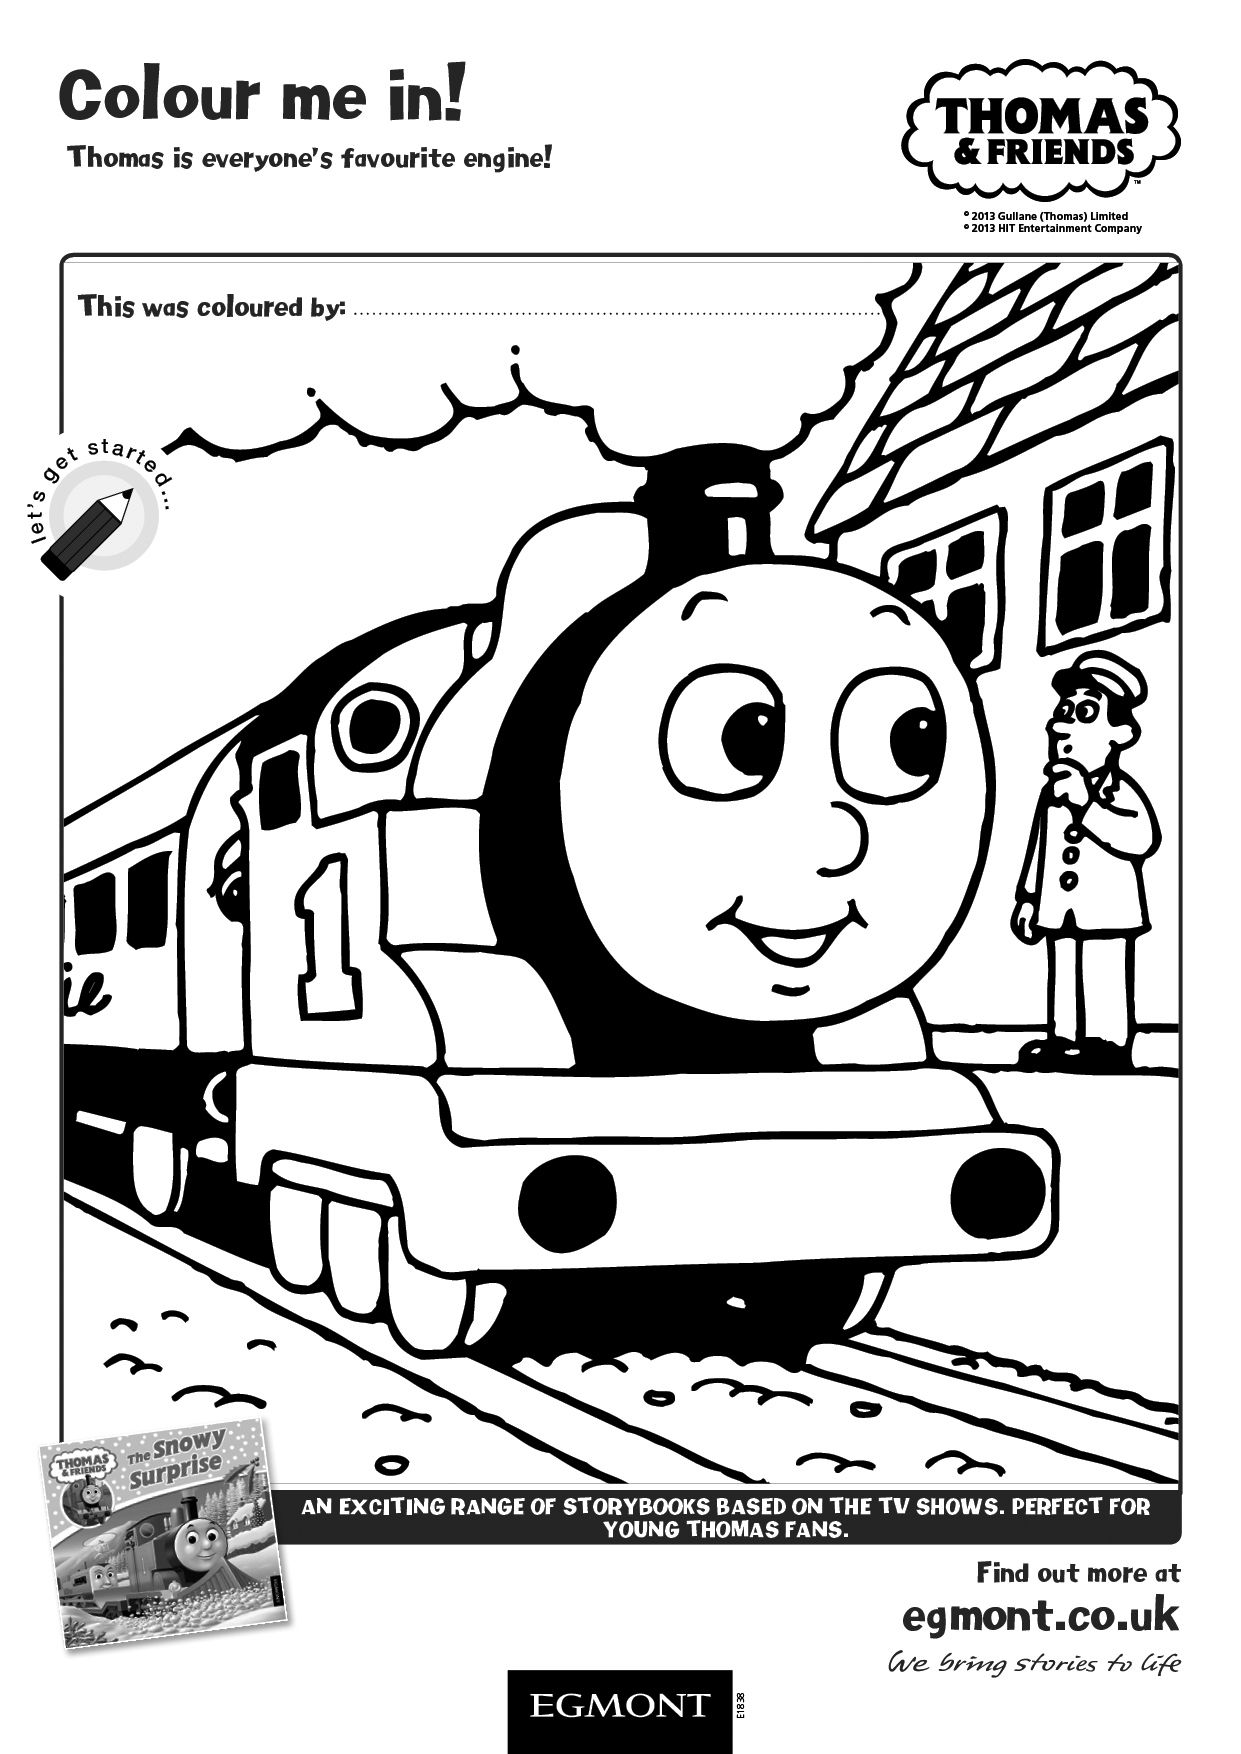 Colour Thomas The Tank Engine In In This Thomas And